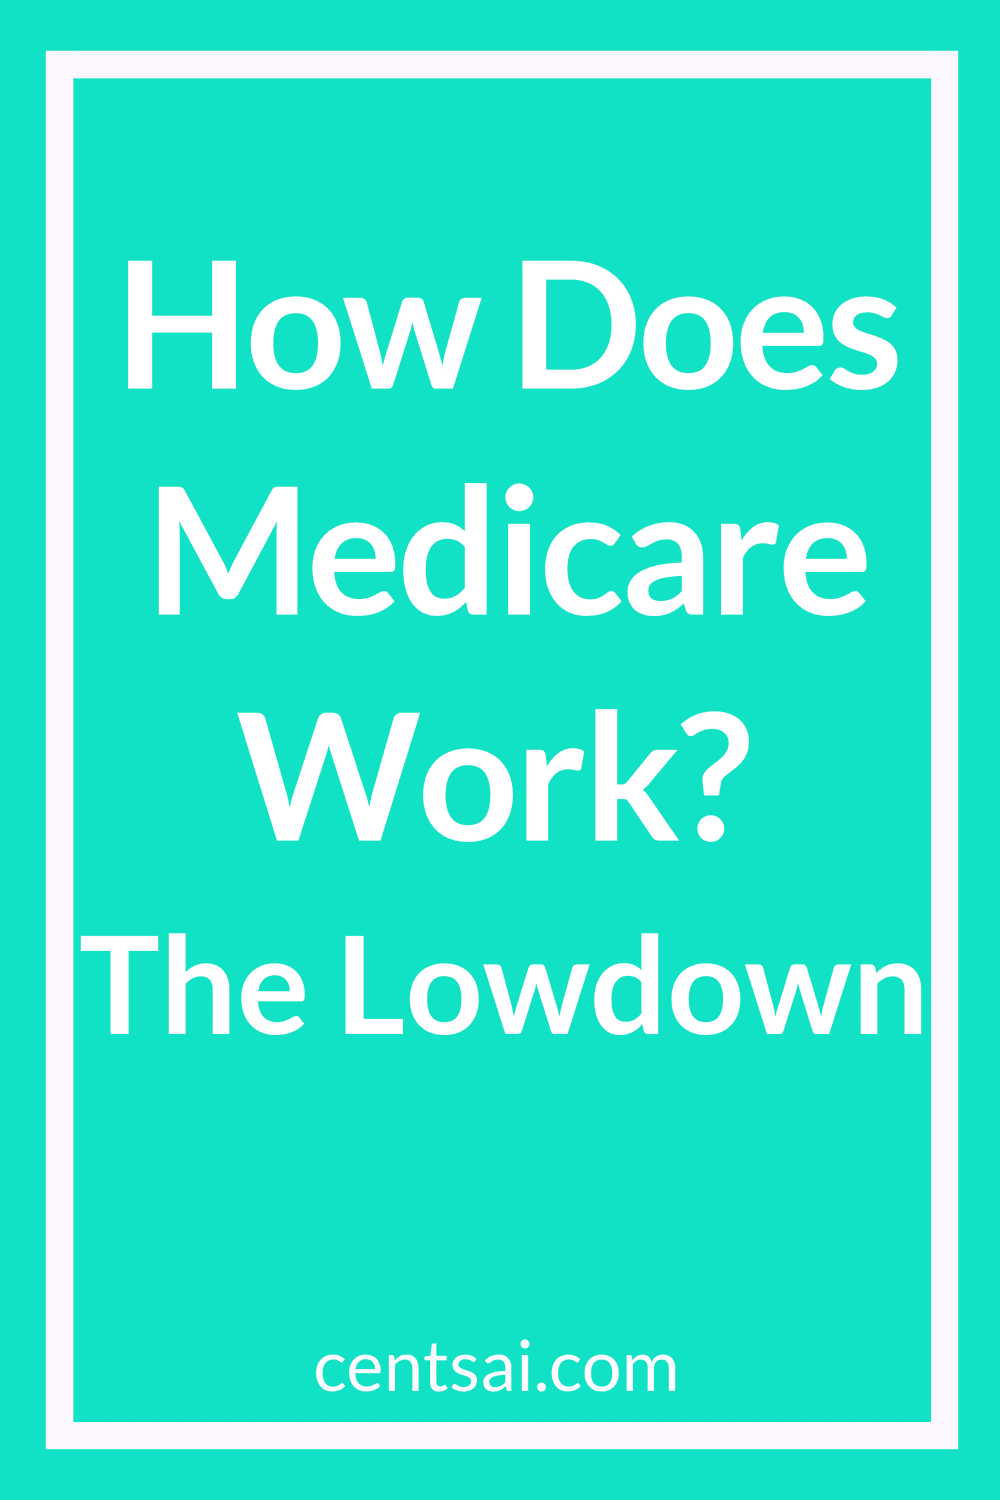 How Does Medicare Work? The Lowdown. If you feel completely lost, you're not alone. Get the lowdown and make sure you sign up for the right Medicare plan. #medicareplan #financialplanning #medicare #healthcare